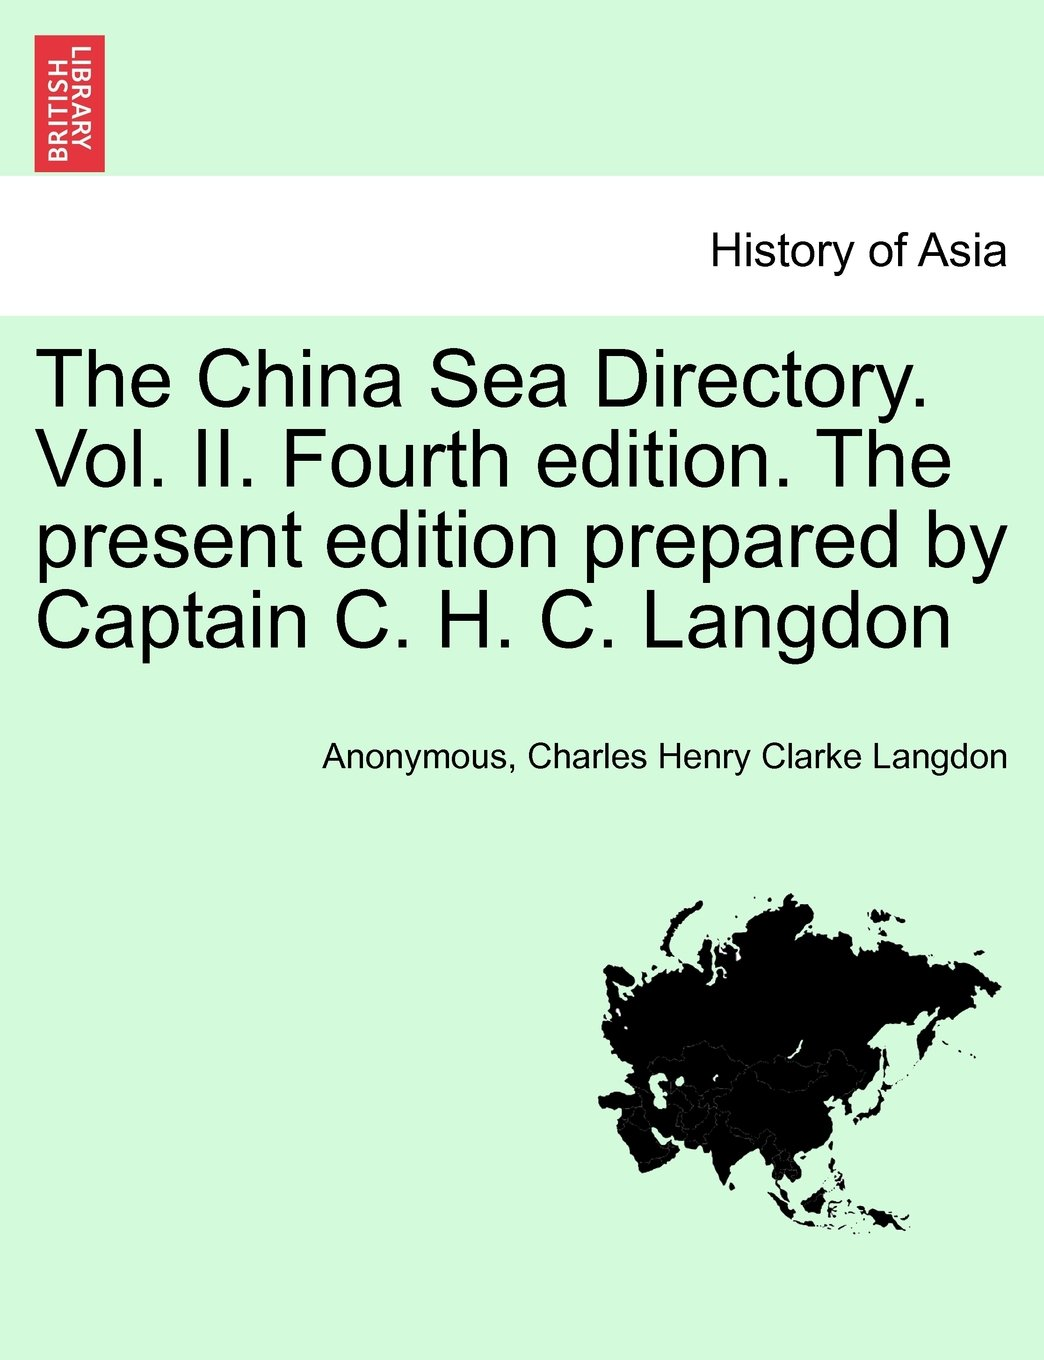 The China Sea Directory. Vol. II. Fourth edition. The present edition prepared by Captain C. H. C. Langdon pdf